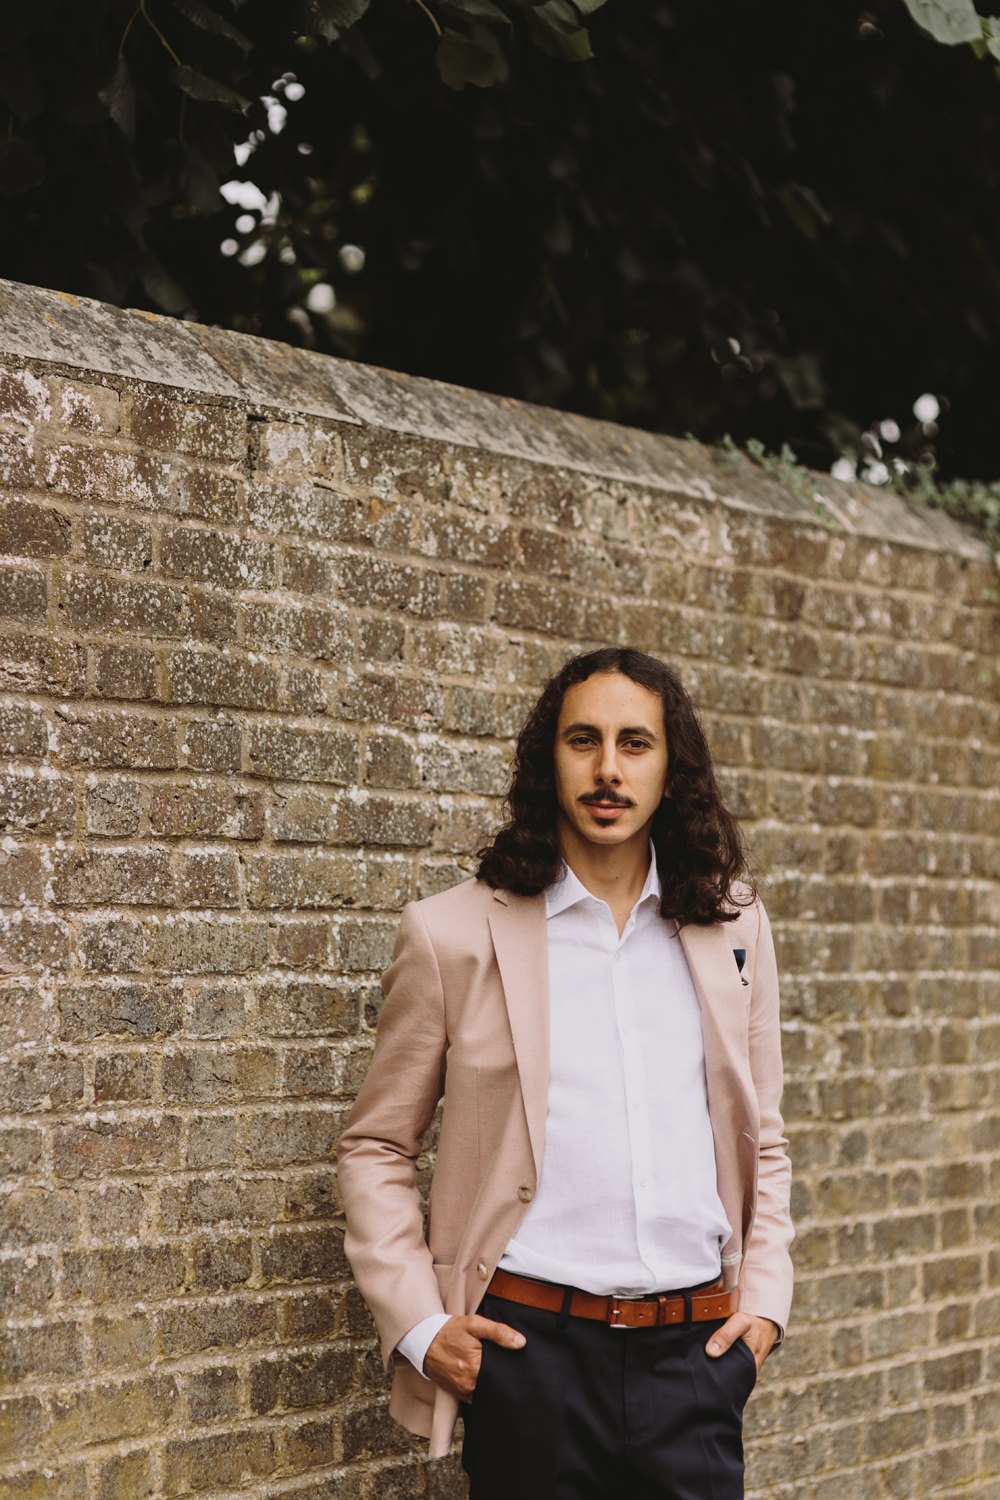 Pink Jacket White Shirt Chinos Casual Groom Pocket Square Tram House Wedding Luke Hayden Photography